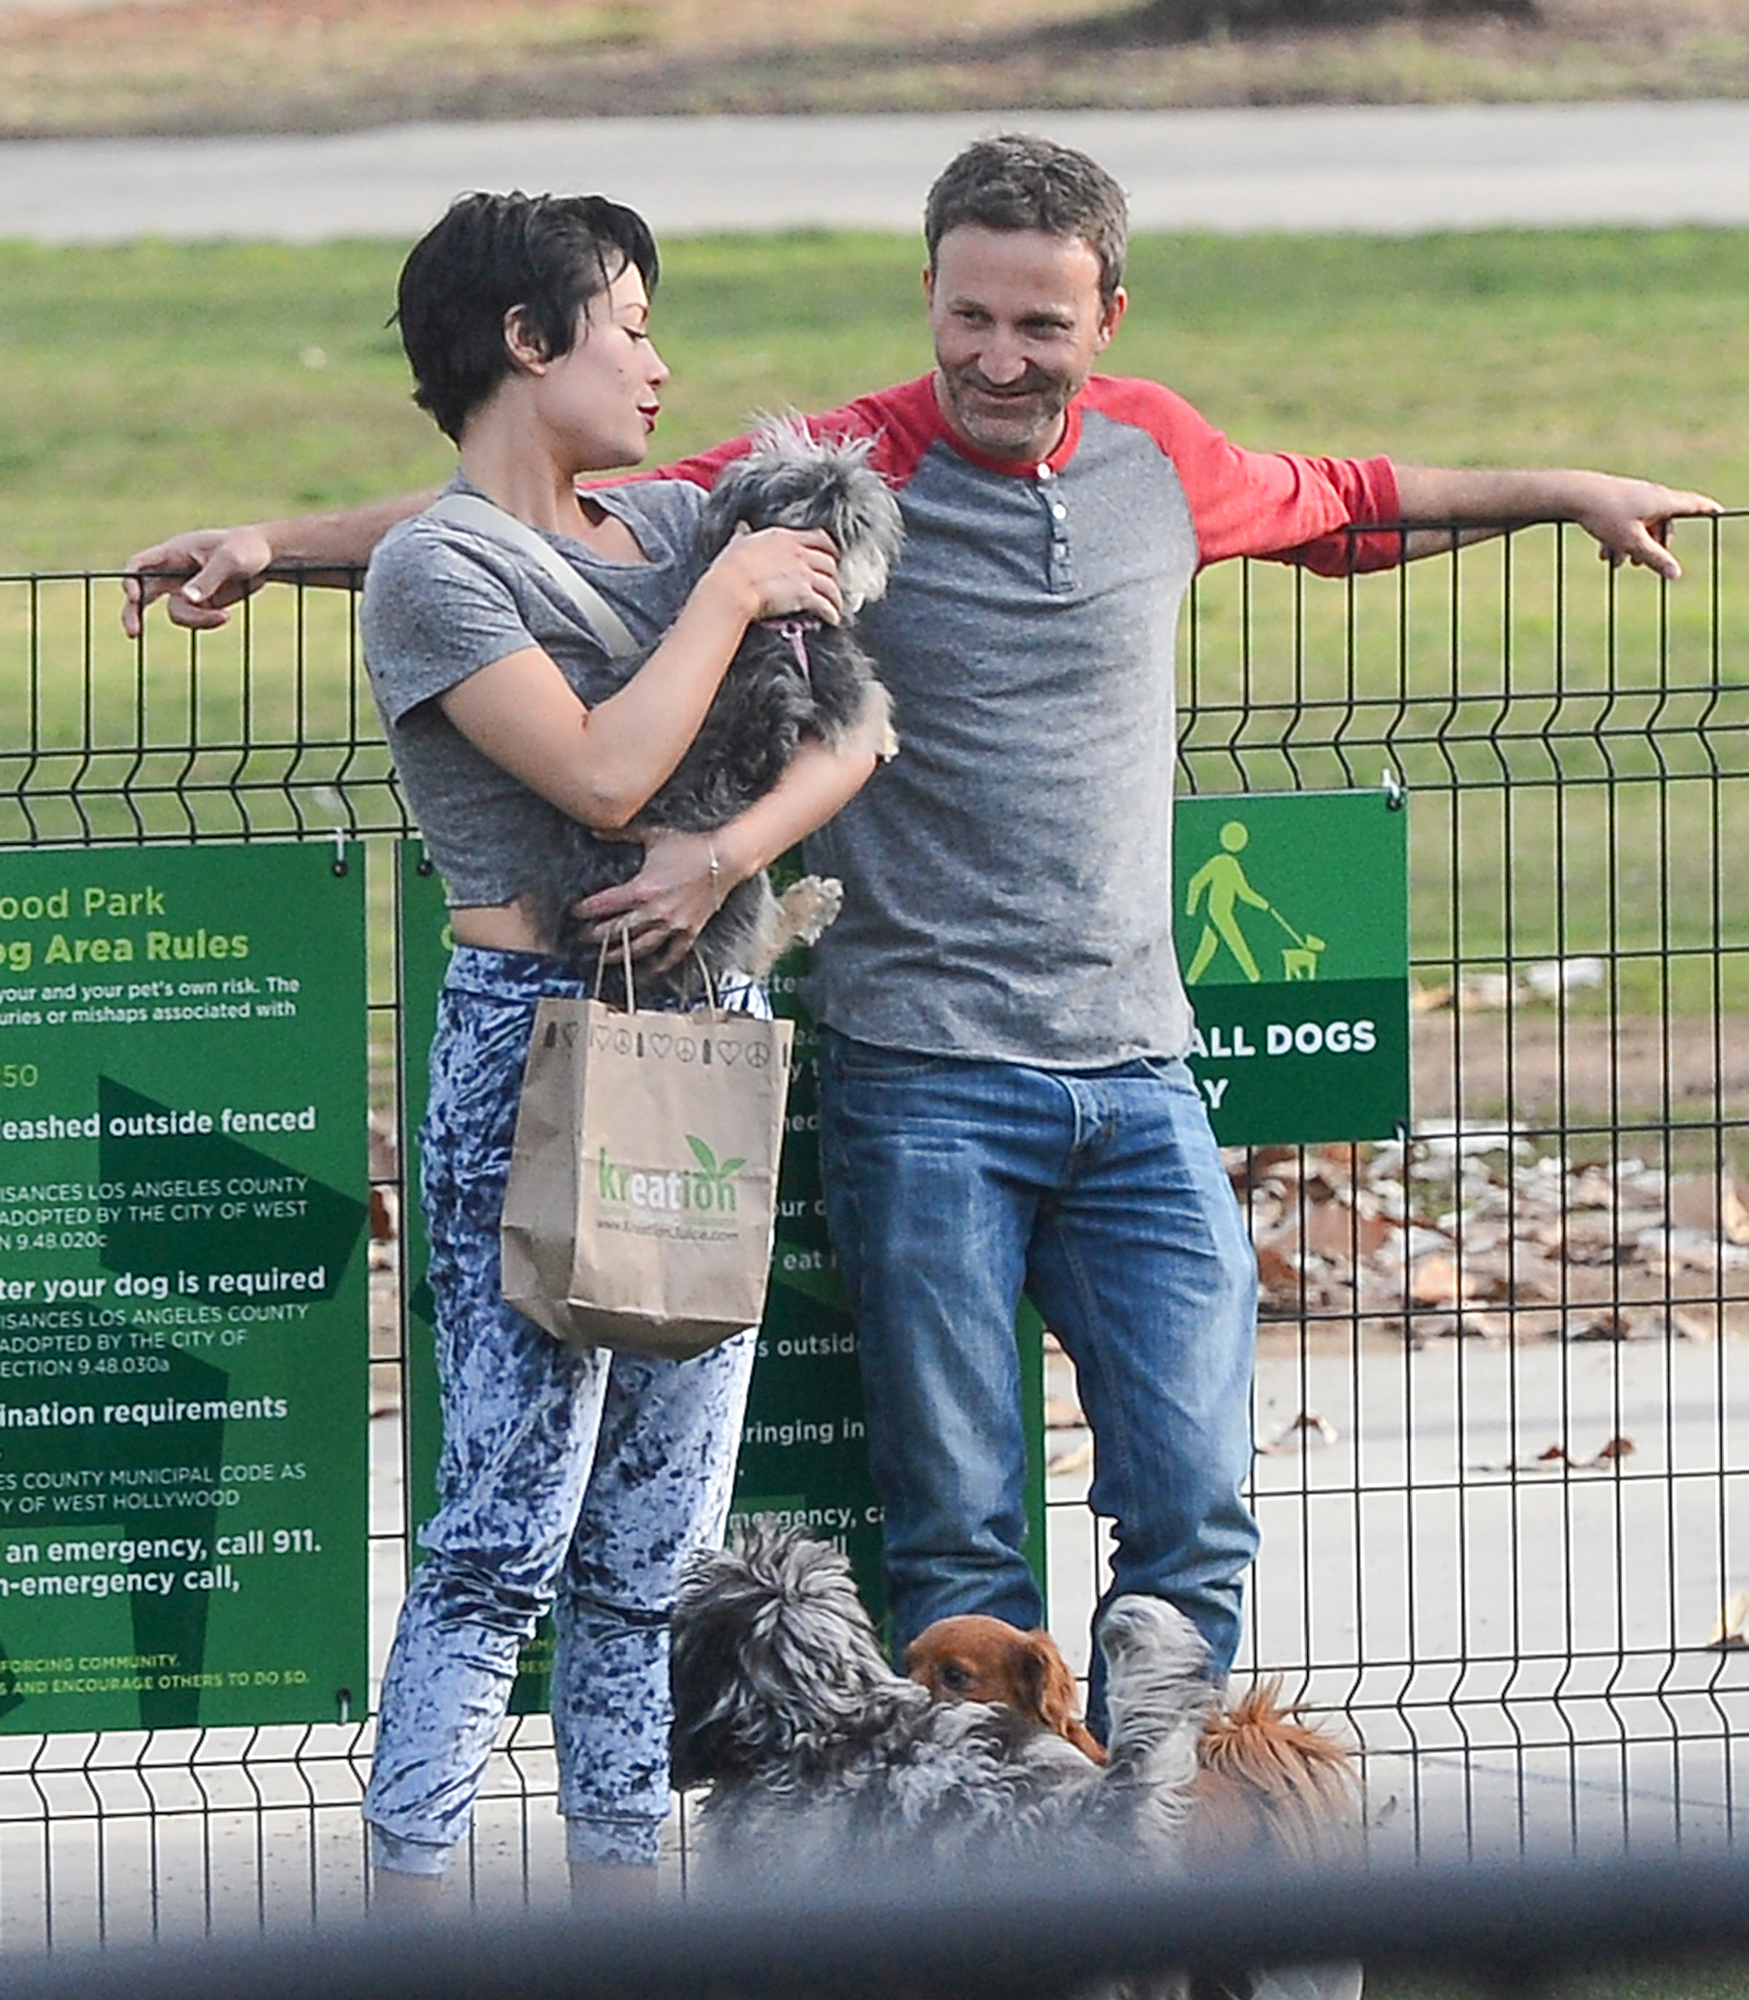 EXCLUSIVE: Breckin Meyer Gets Close to a Mystery Girl at a Dog Park in West Hollywood